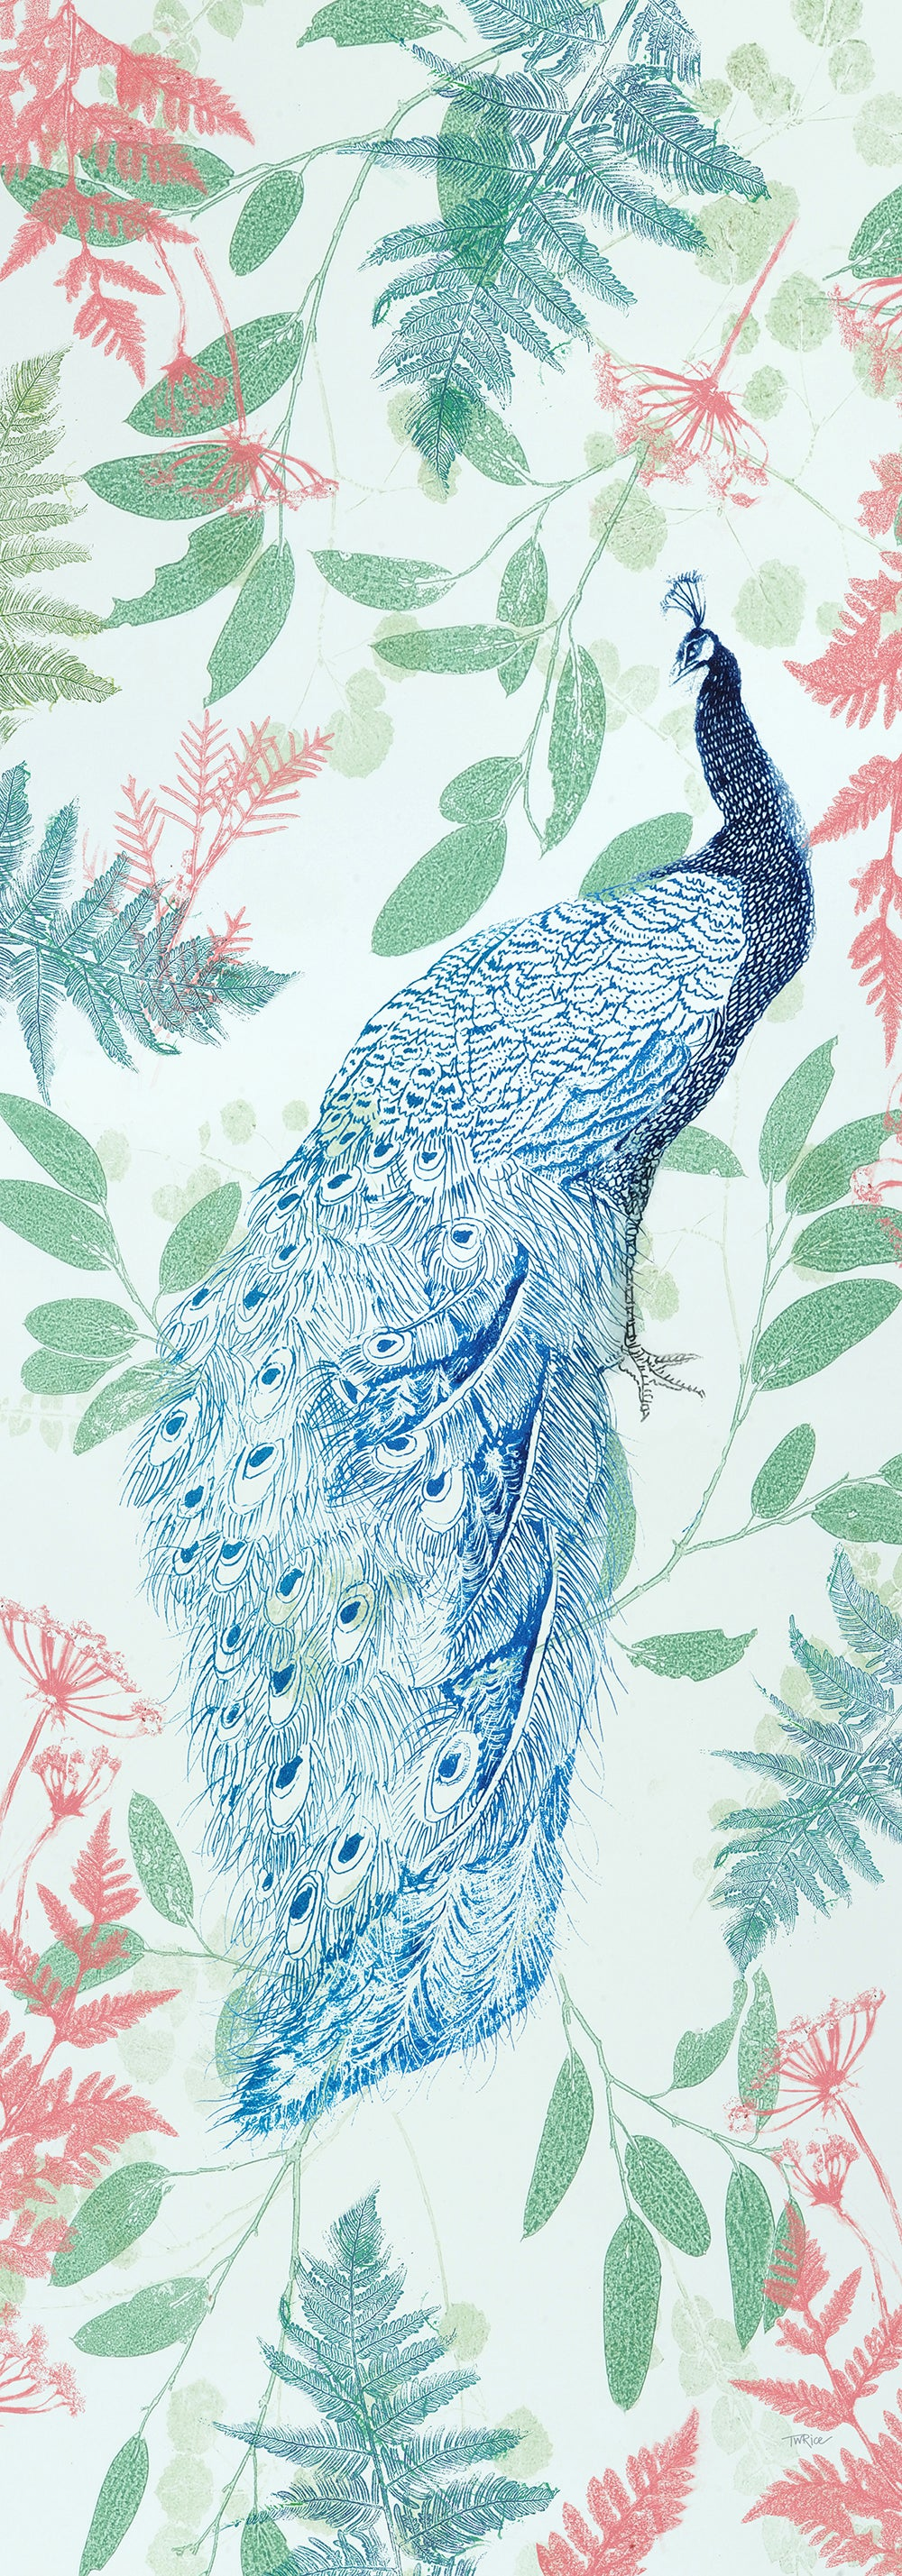 Peacock Design Scarf